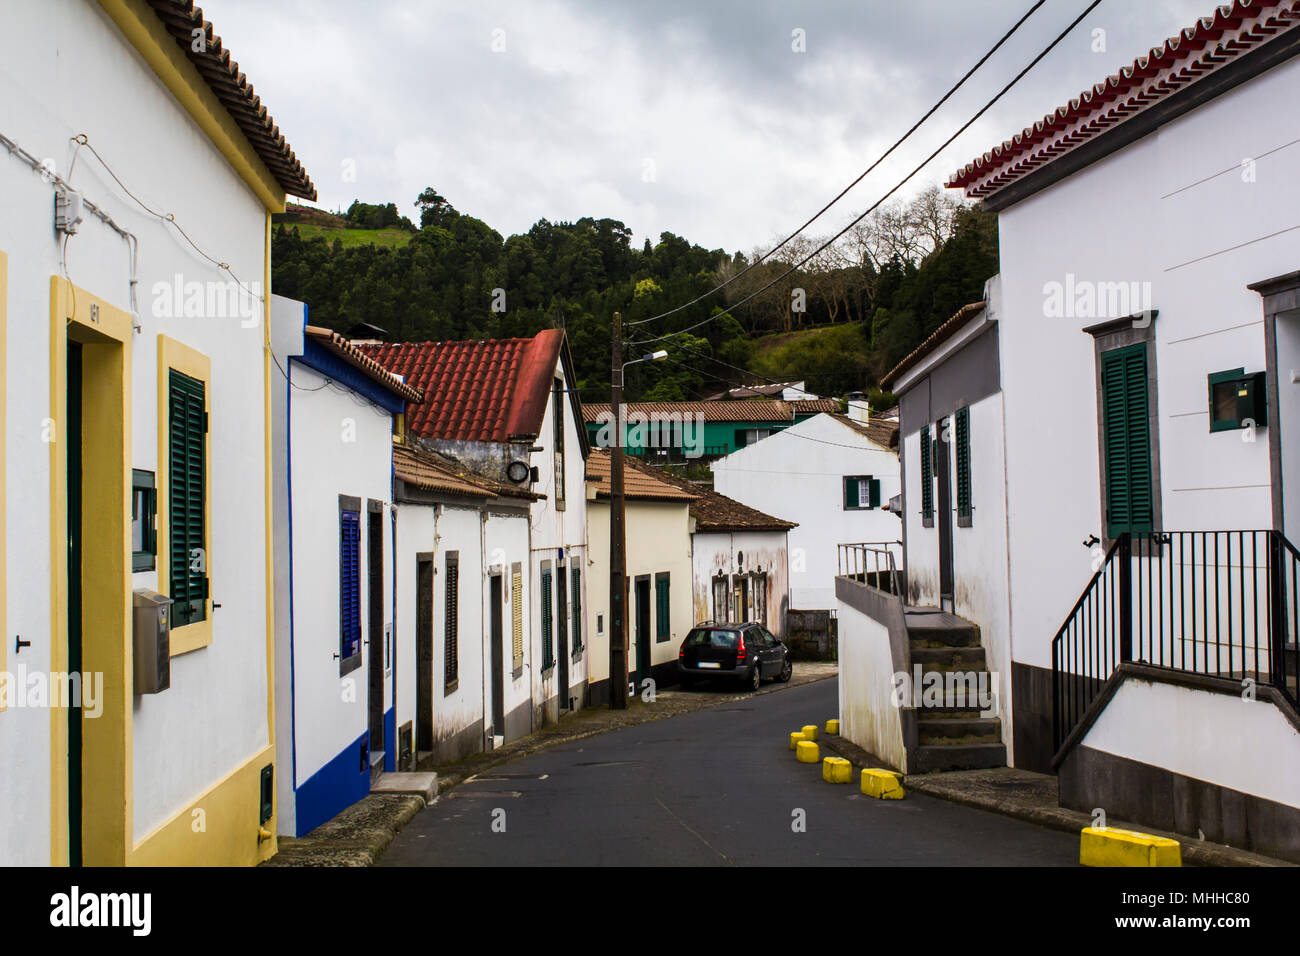 Houses along street in small town - Stock Image